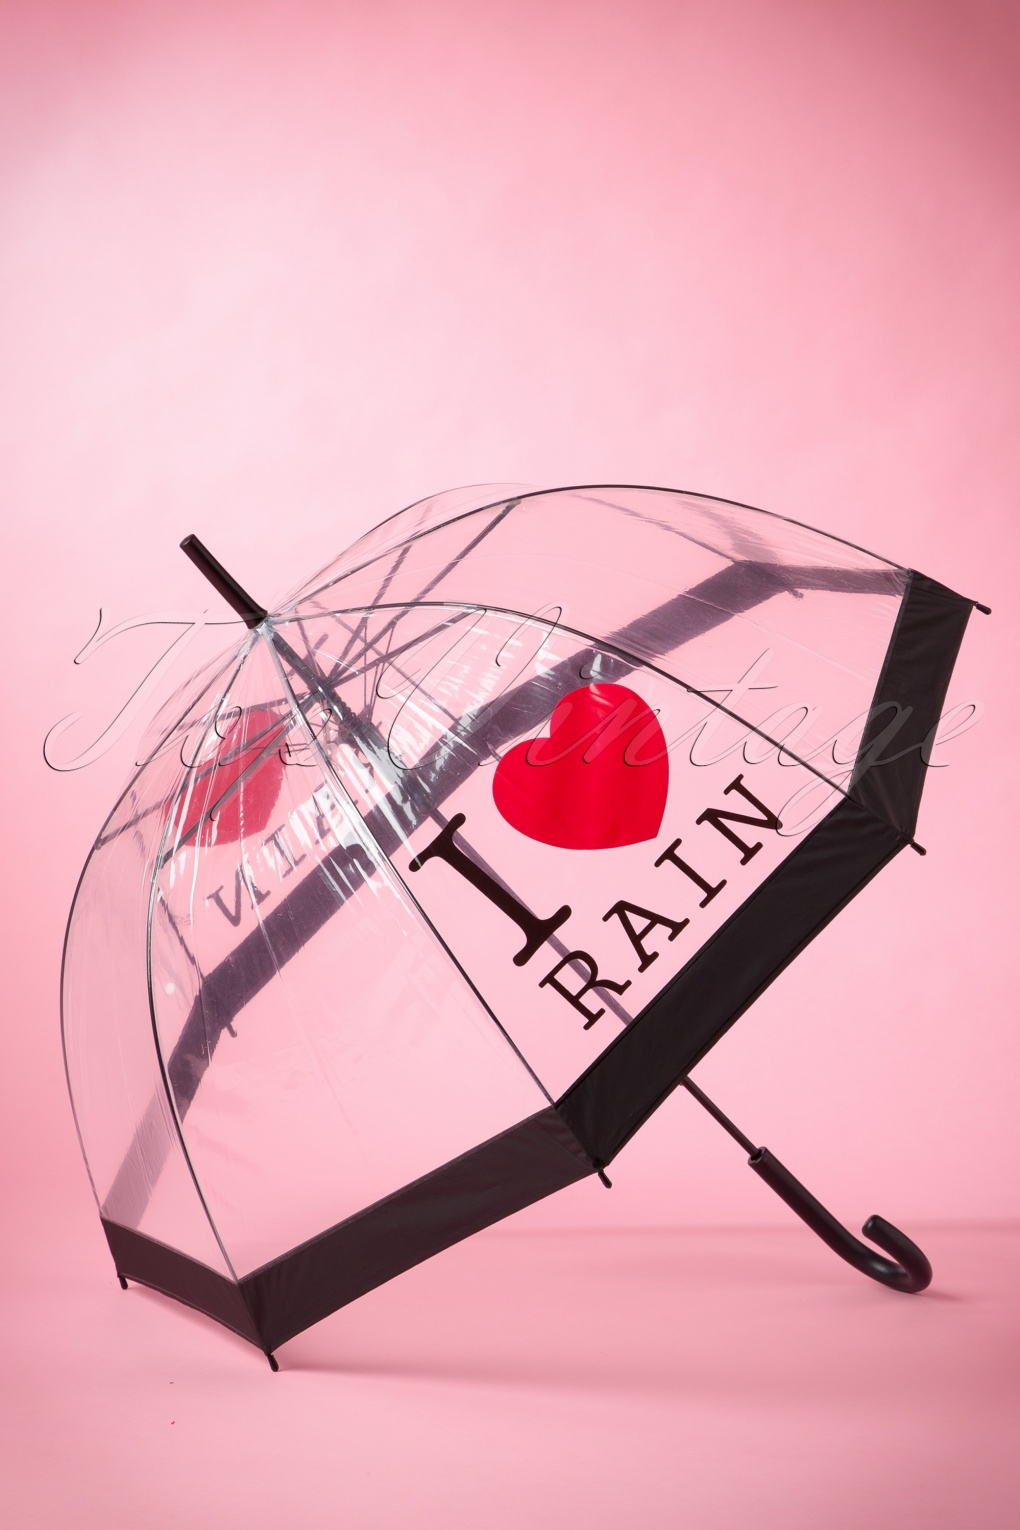 Vintage Style Parasols and Umbrellas 50s I love Rain Transparent Dome Umbrella £15.79 AT vintagedancer.com